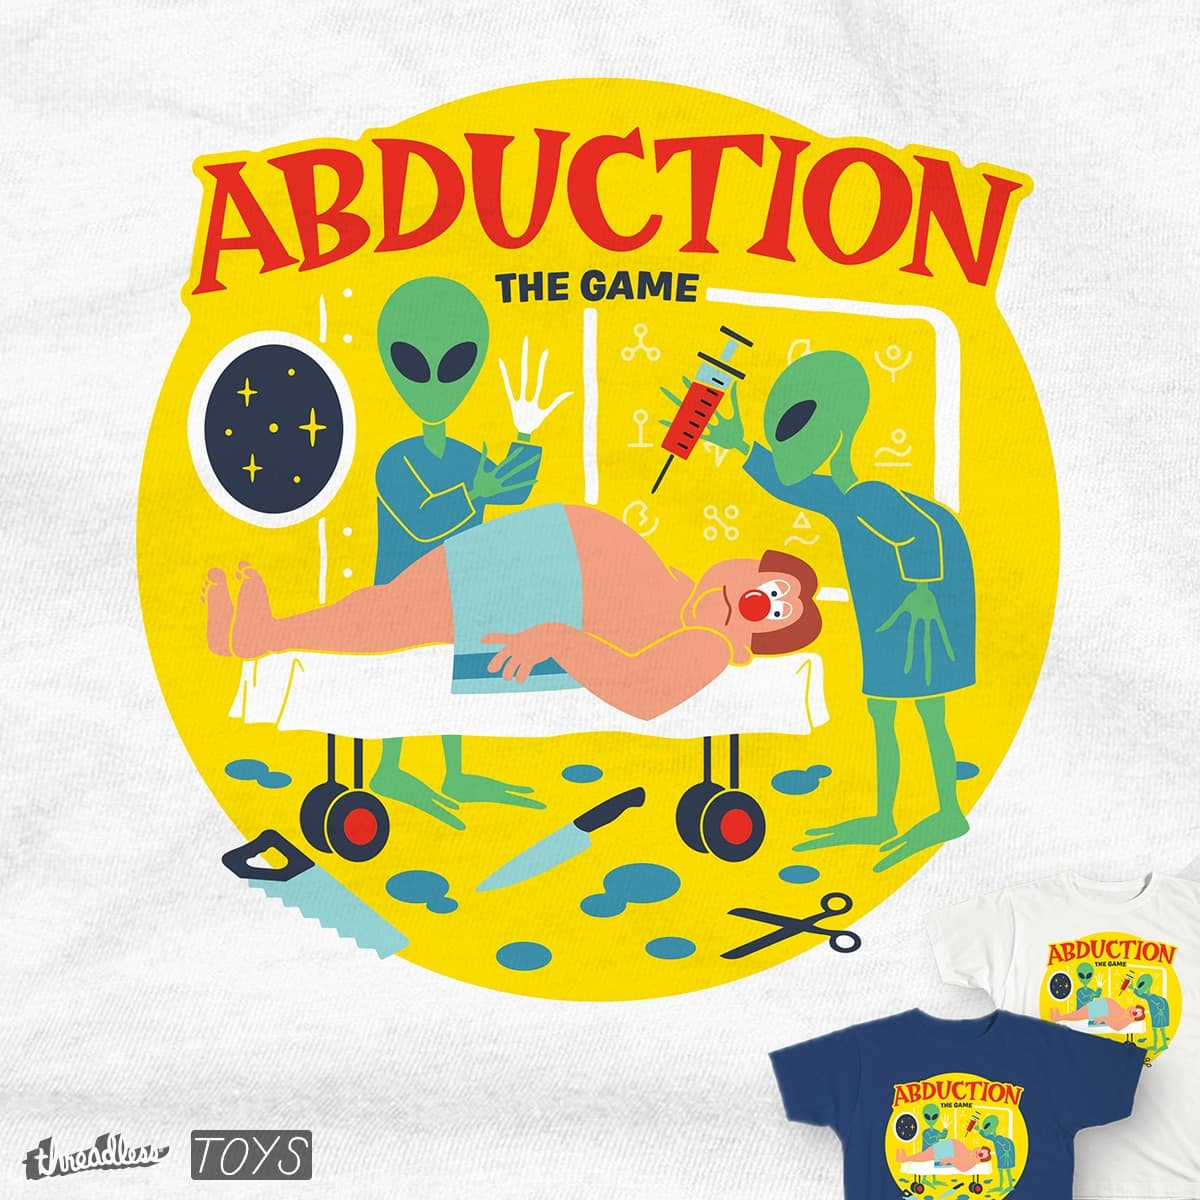 Abduction by csweiler on Threadless